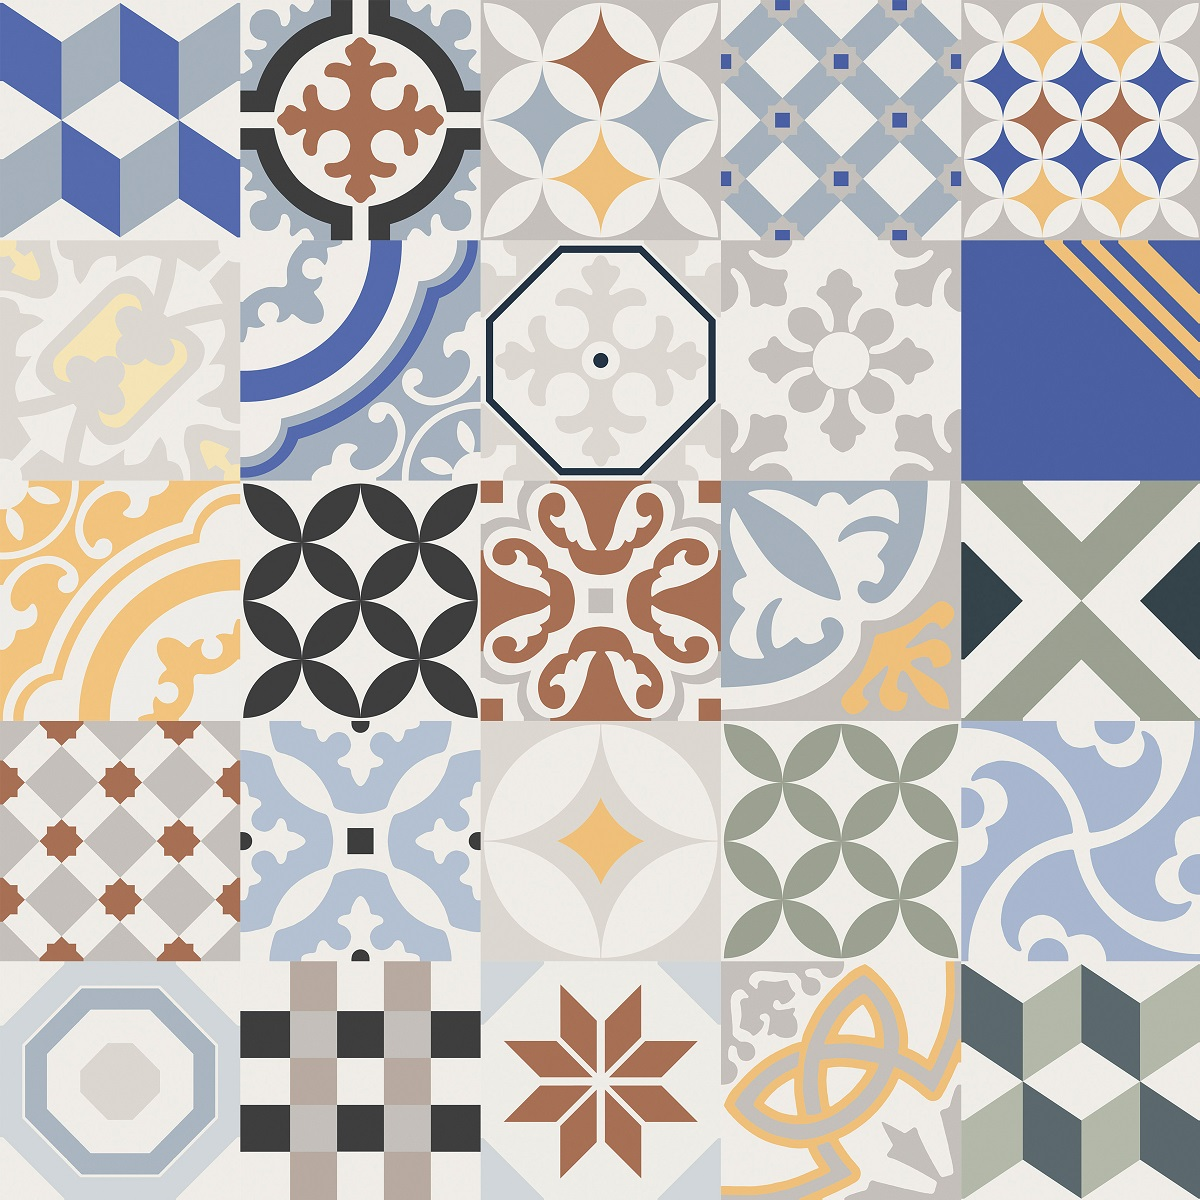 image/catalog/product_series_tiles/2254/combined_sp.jpg